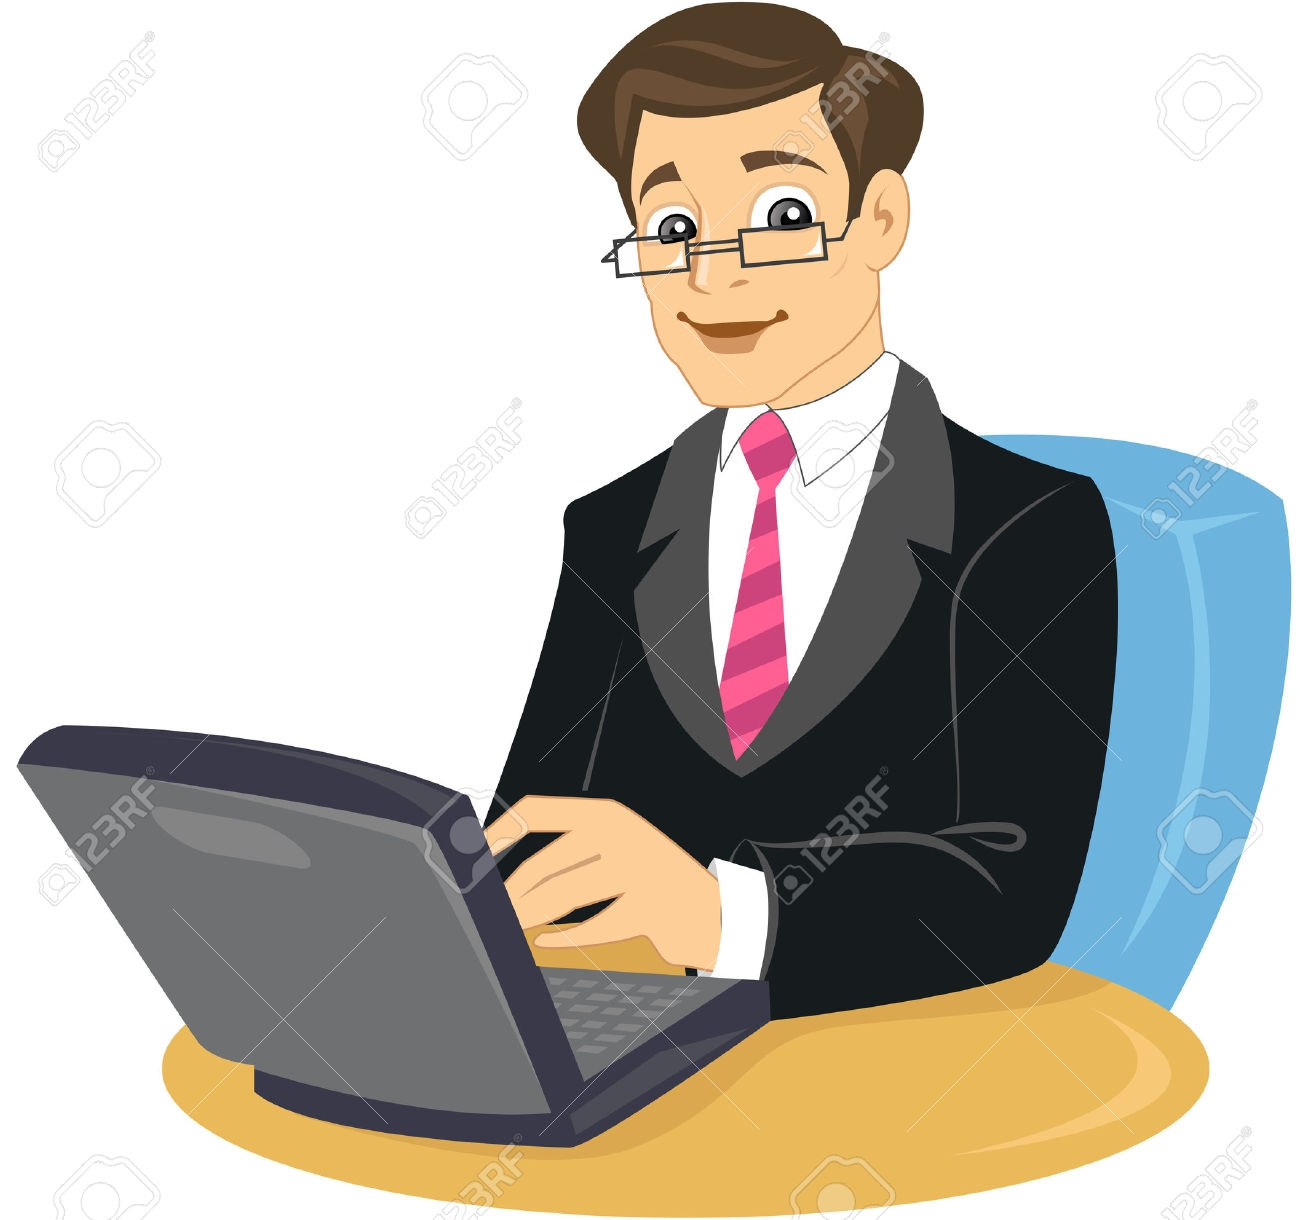 Working clipart Beautiful Business clipart working man Pencil and in.